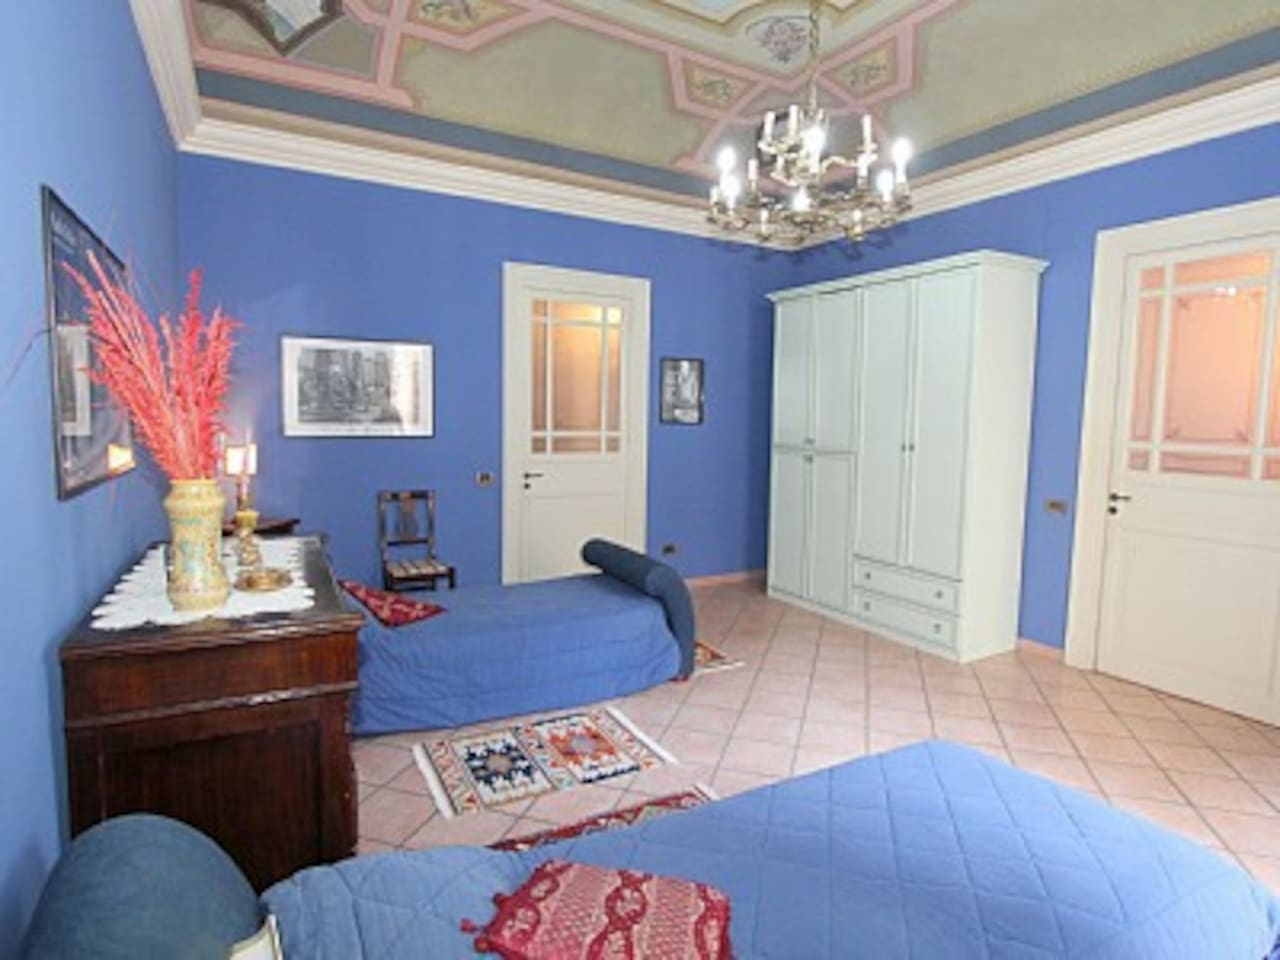 24 sm room with balcony. The room is available for 1, 2 or 3 people.